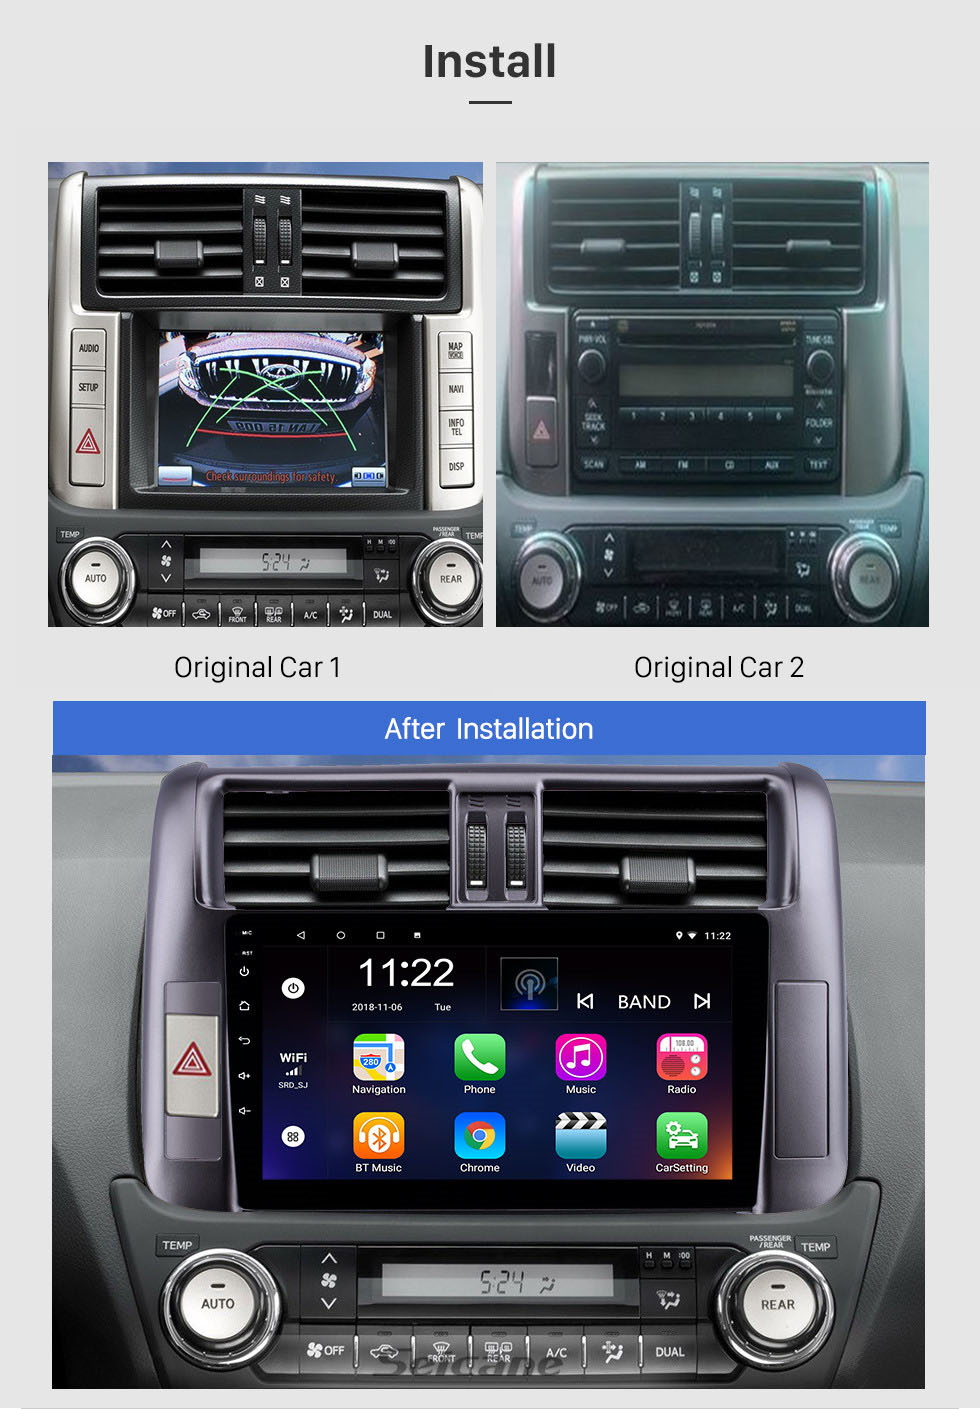 Seicane 9 inch 2010-2013 Toyota Prado 150 Android 10.0 Radio GPS System with 1024*600 Touchscreen Bluetooth Music support OBD2 DVR Rearview camera TV 1080P 3G WIFI Steering Wheel Control